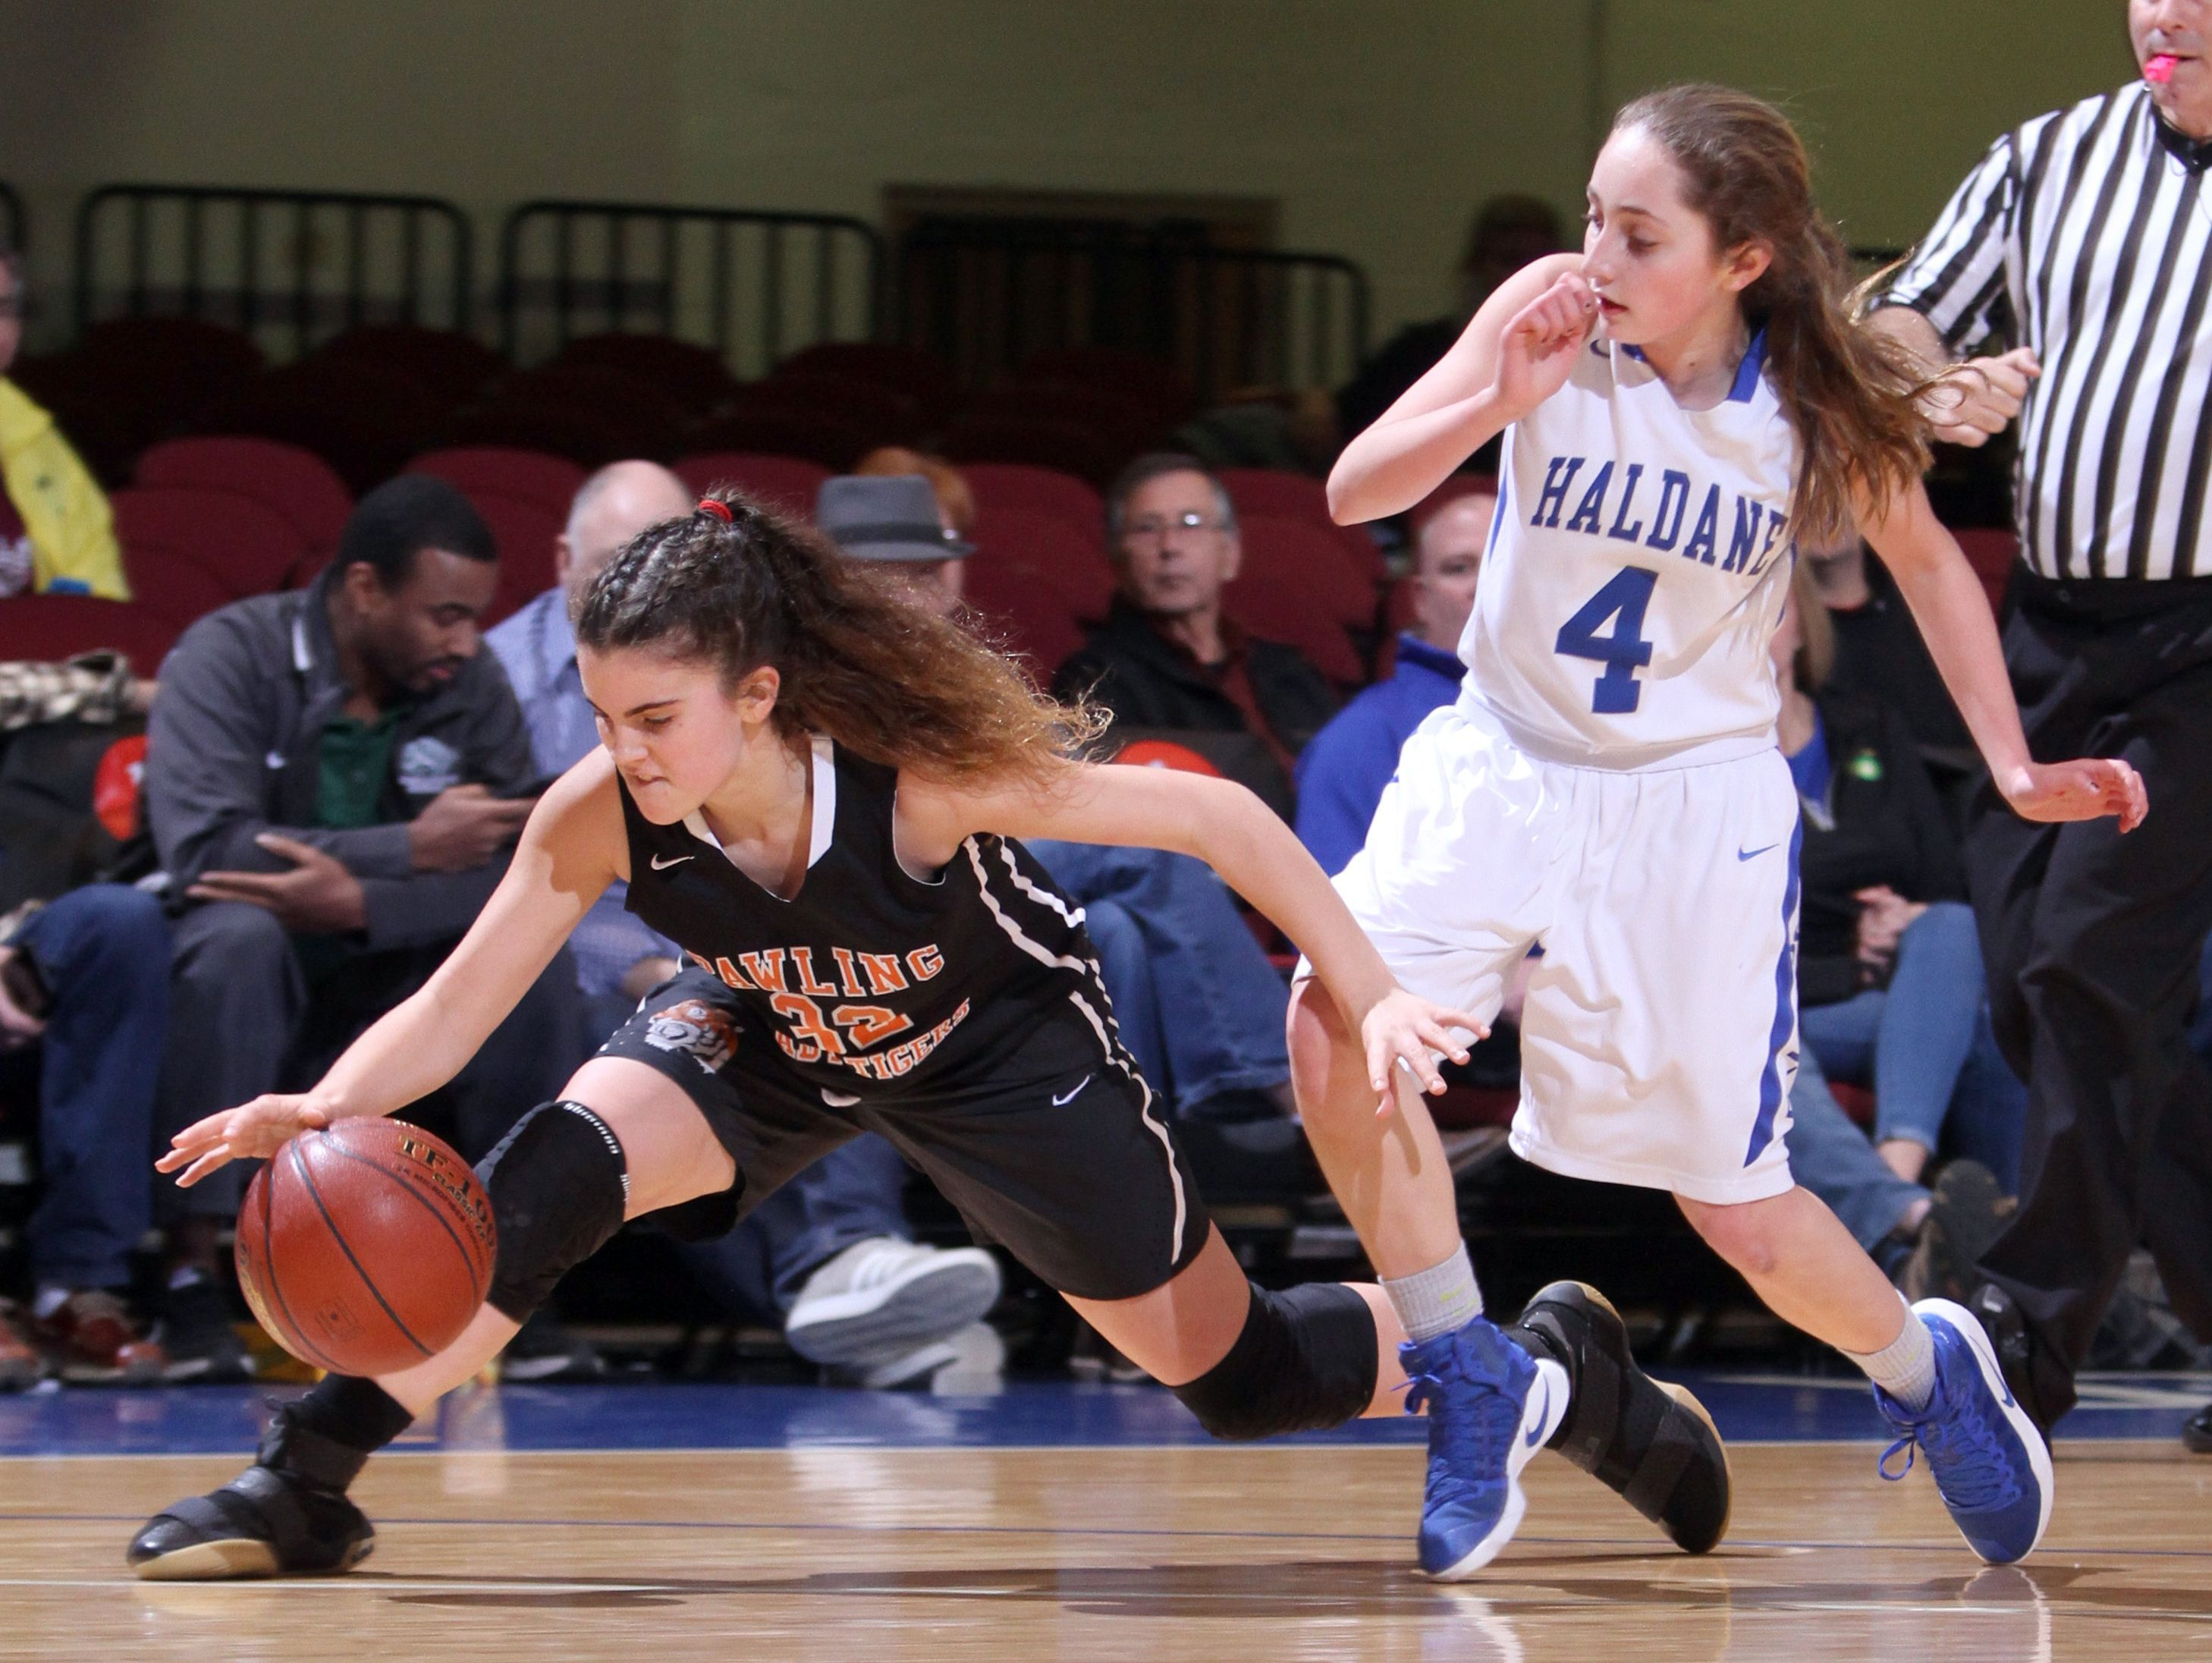 Pawling's Taylor Brenneman stretches for the loose ball as she battles Haldane's Olivia McDermott during a Section 1 Class C semifinal basketball game at the Westchester County Center Feb. 28, 2017. Haldane defeated Pawling 64-37.